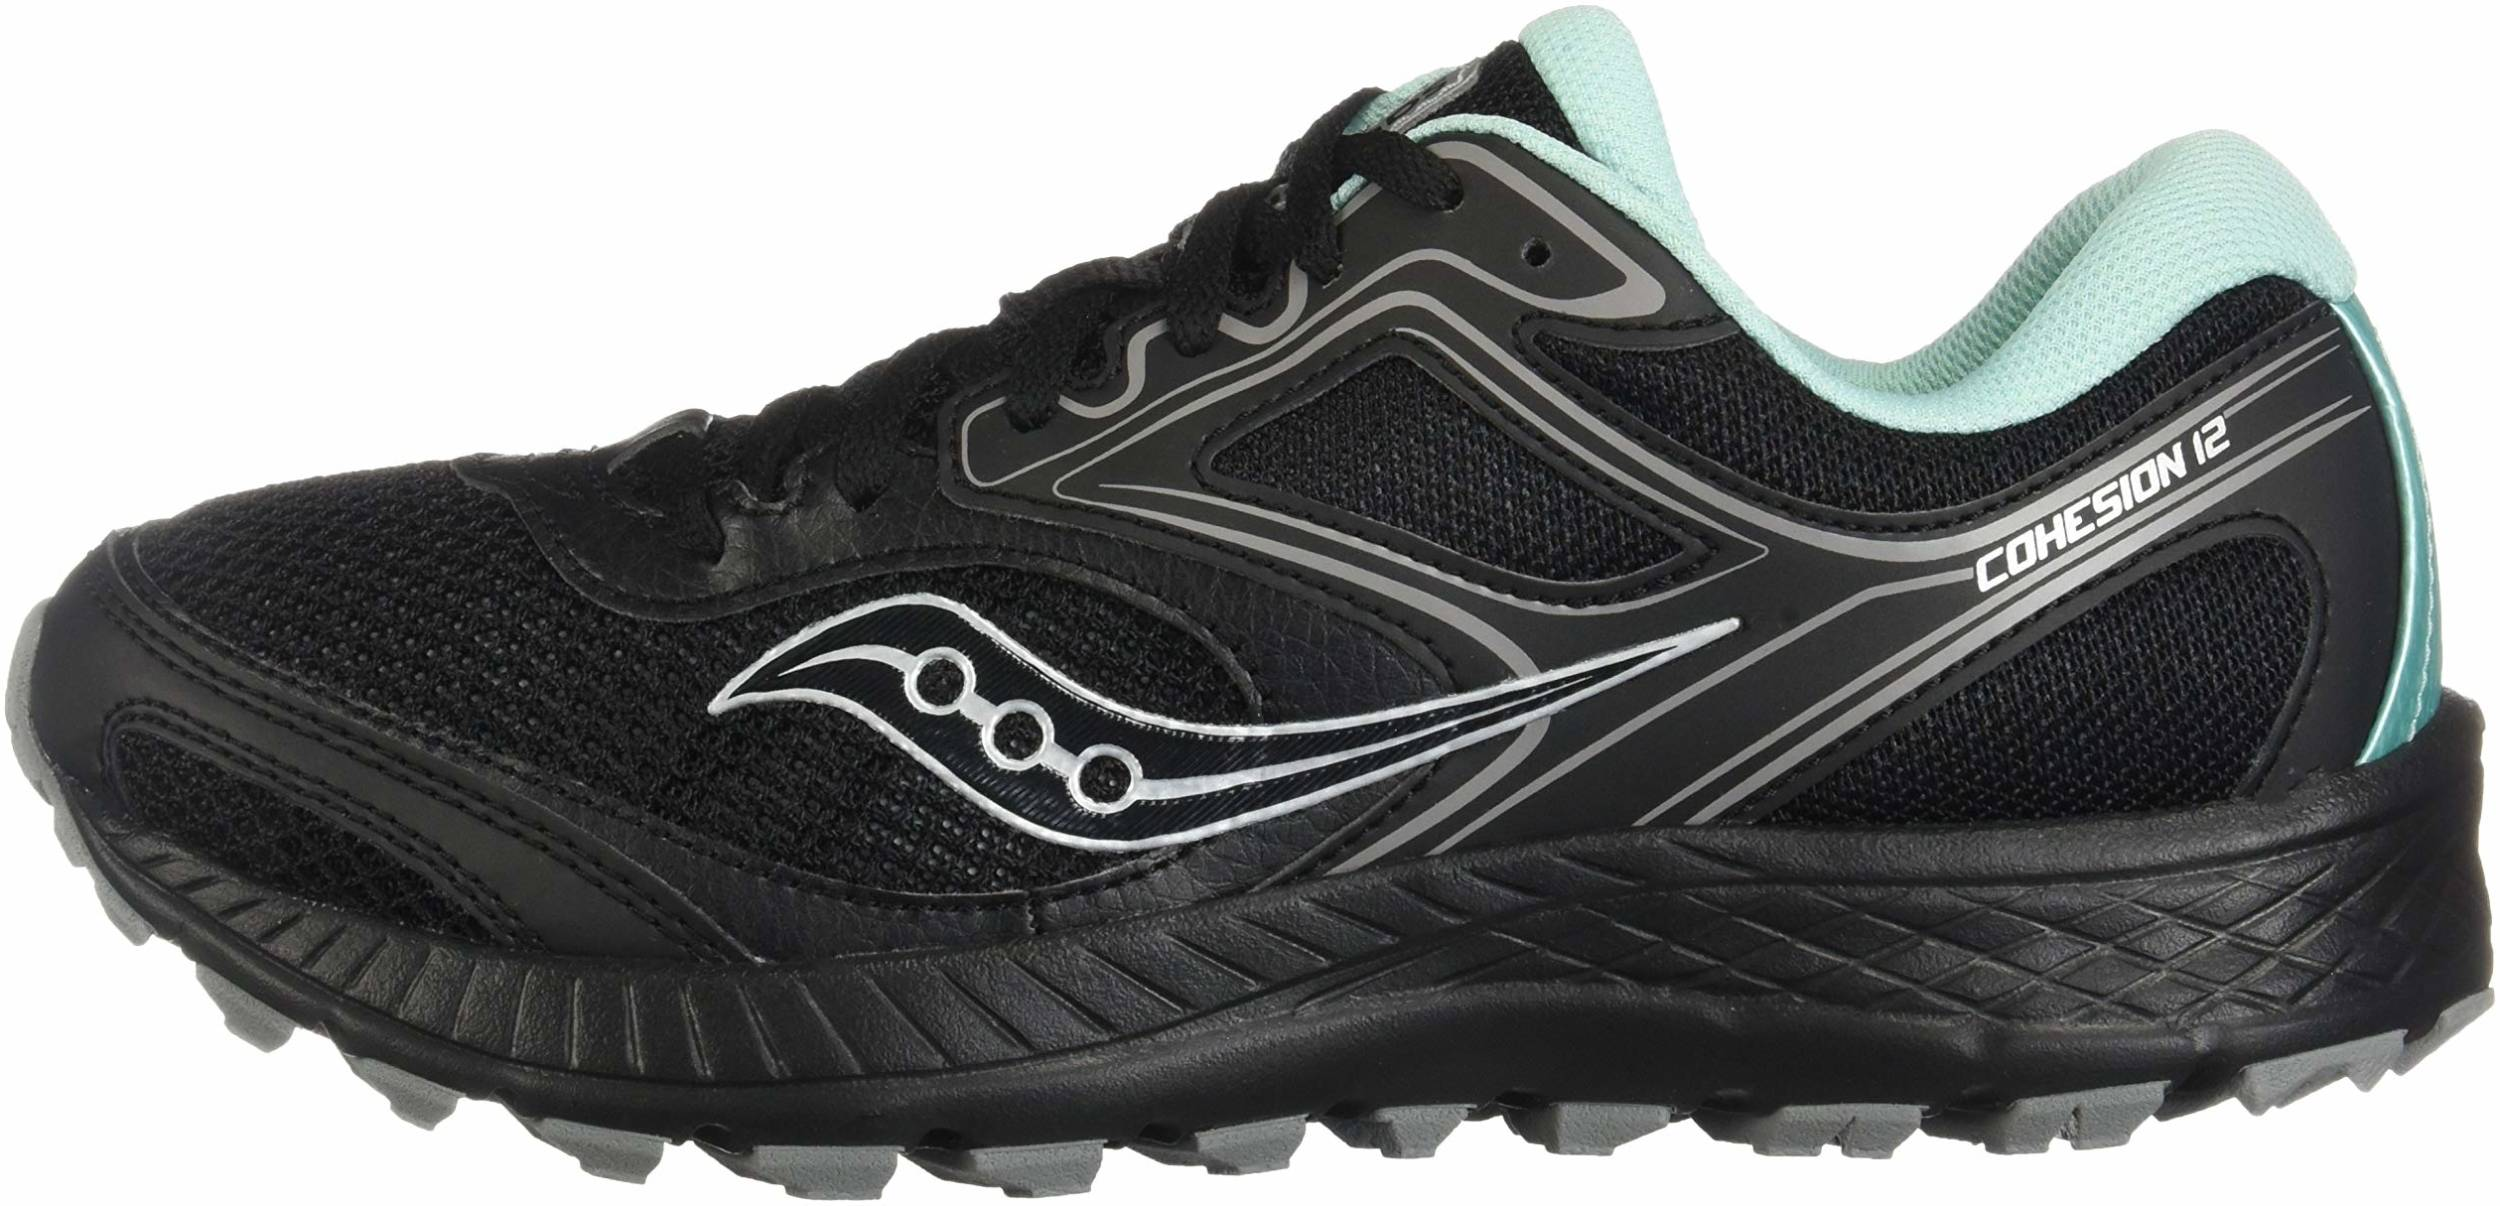 $66 + Review of Saucony Cohesion TR 12